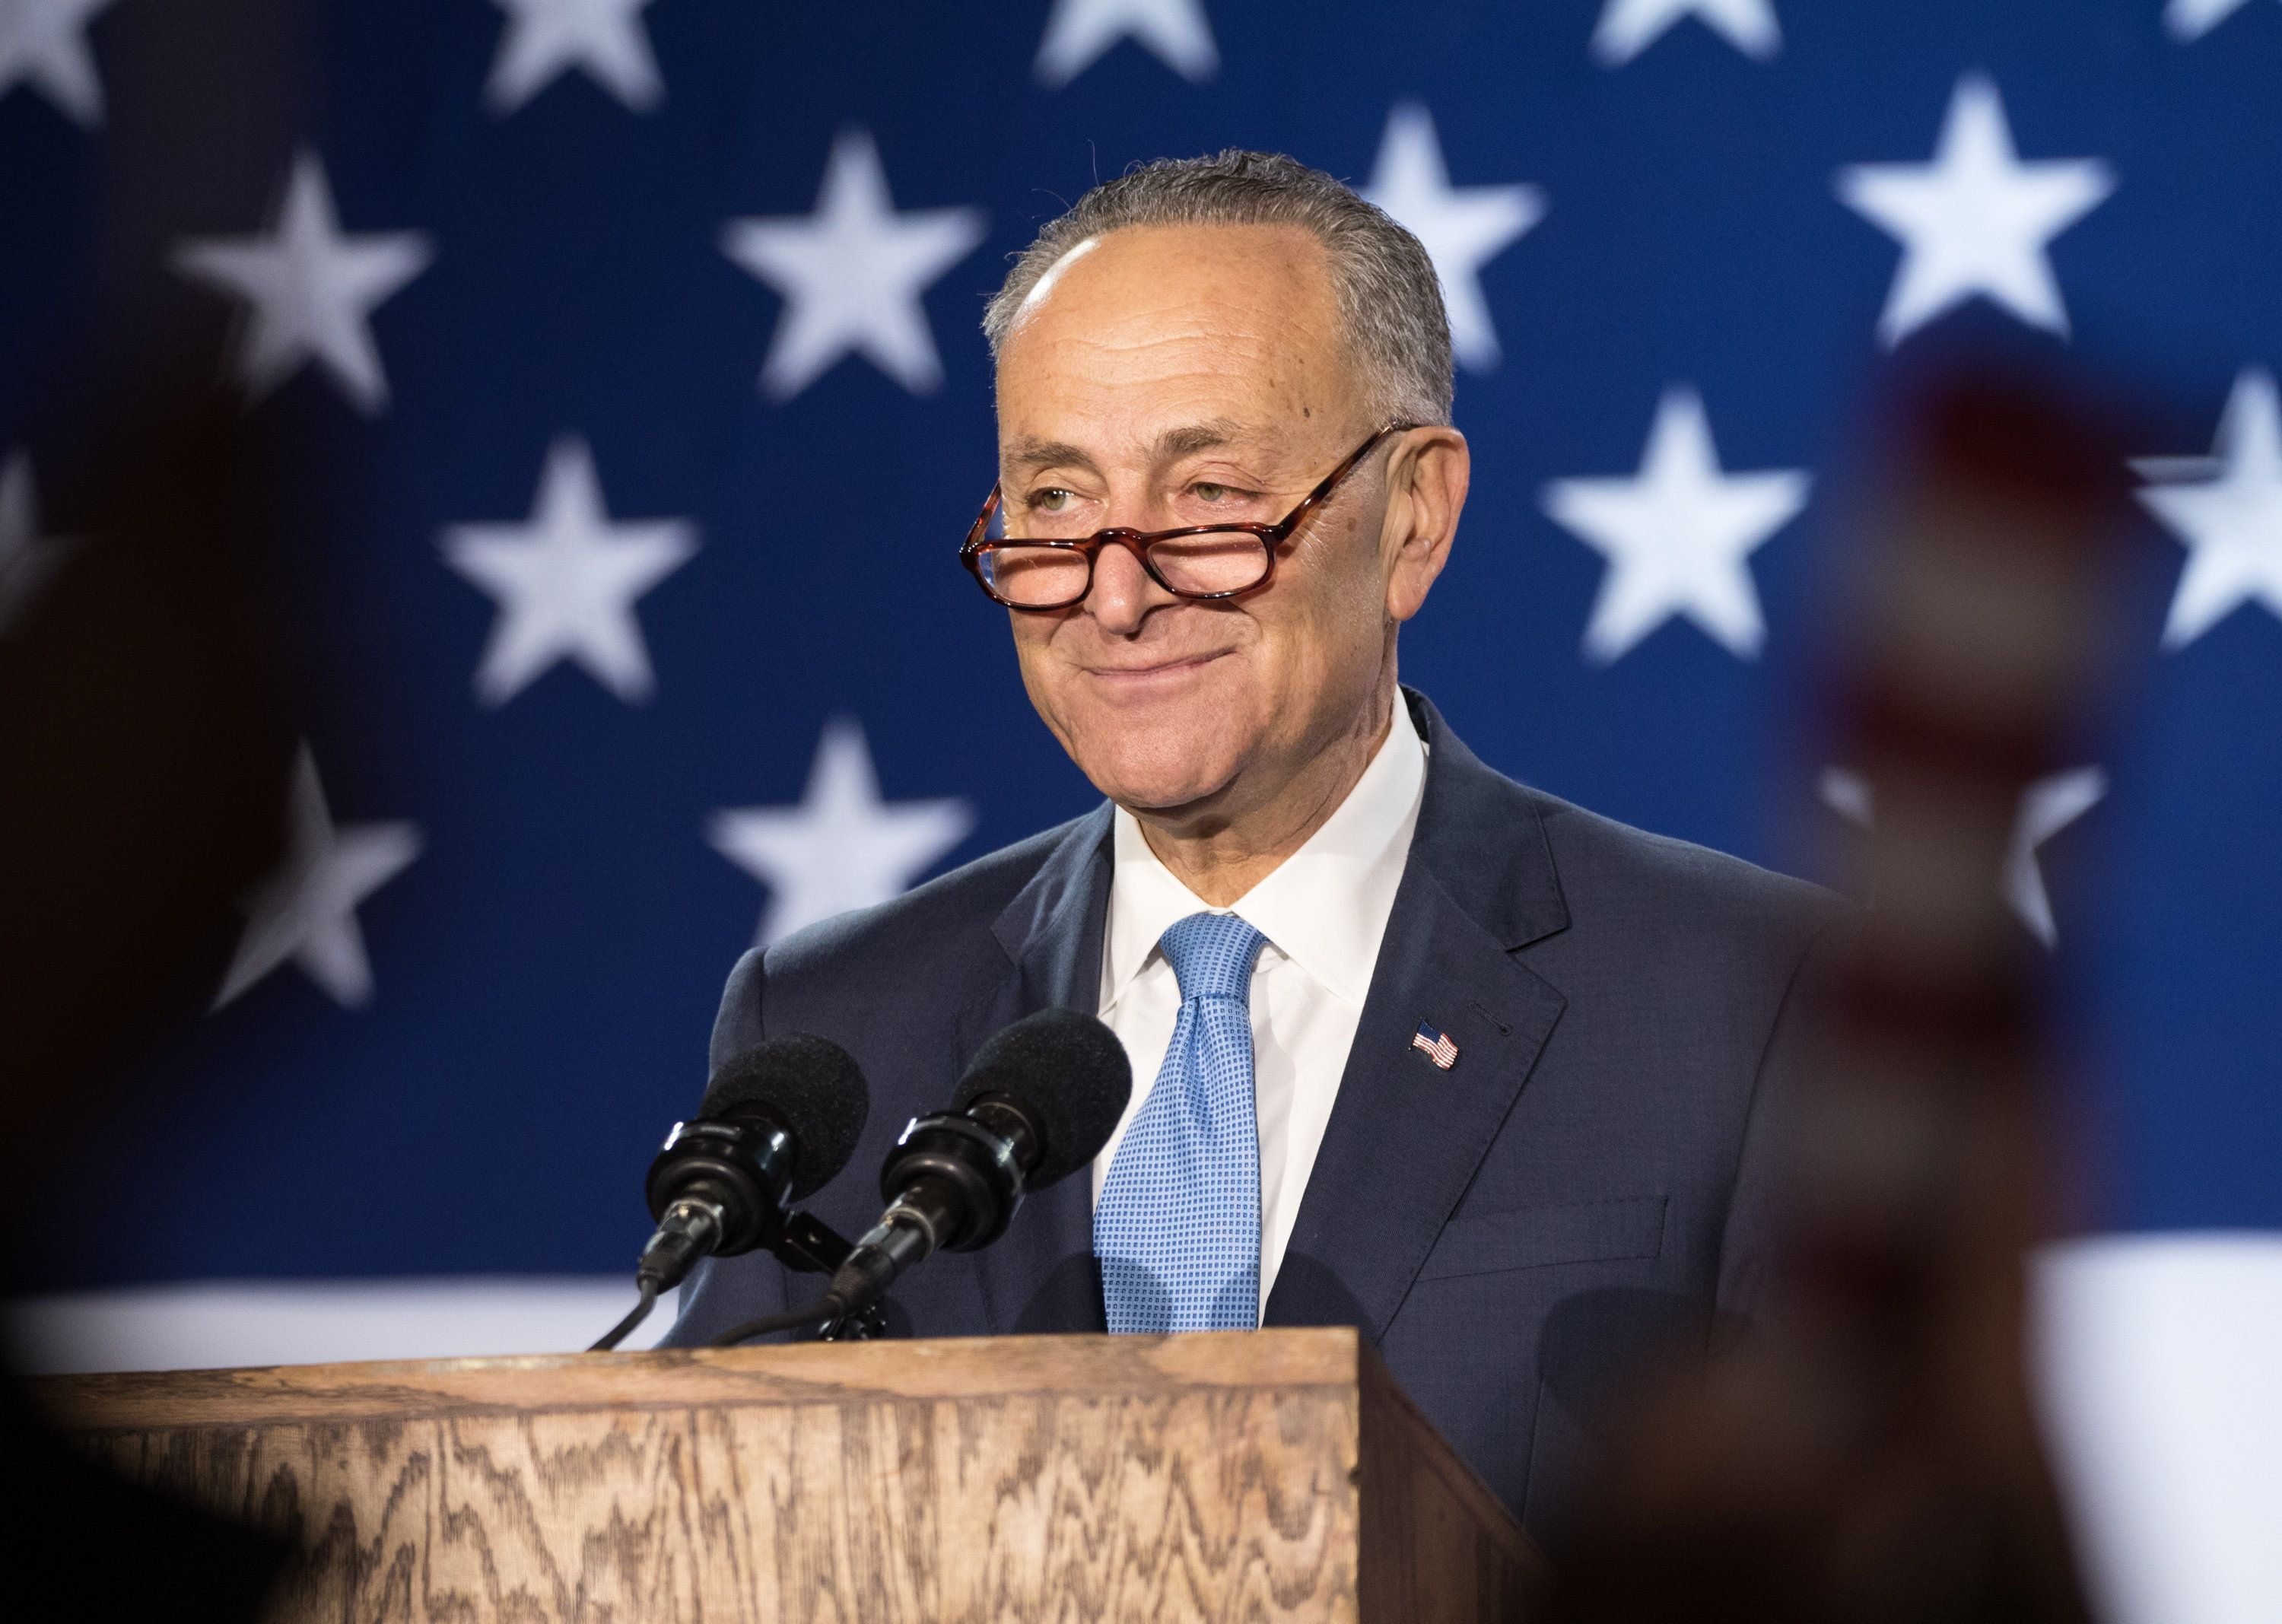 NEW YORK, NY - NOVEMBER 08:  United States Senator Chuck Schumer speaks at Democratic presidential nominee Hillary Clinton's election night event at Javits Center on November 8, 2016 in New York City.  (Photo by Noam Galai/FilmMagic)